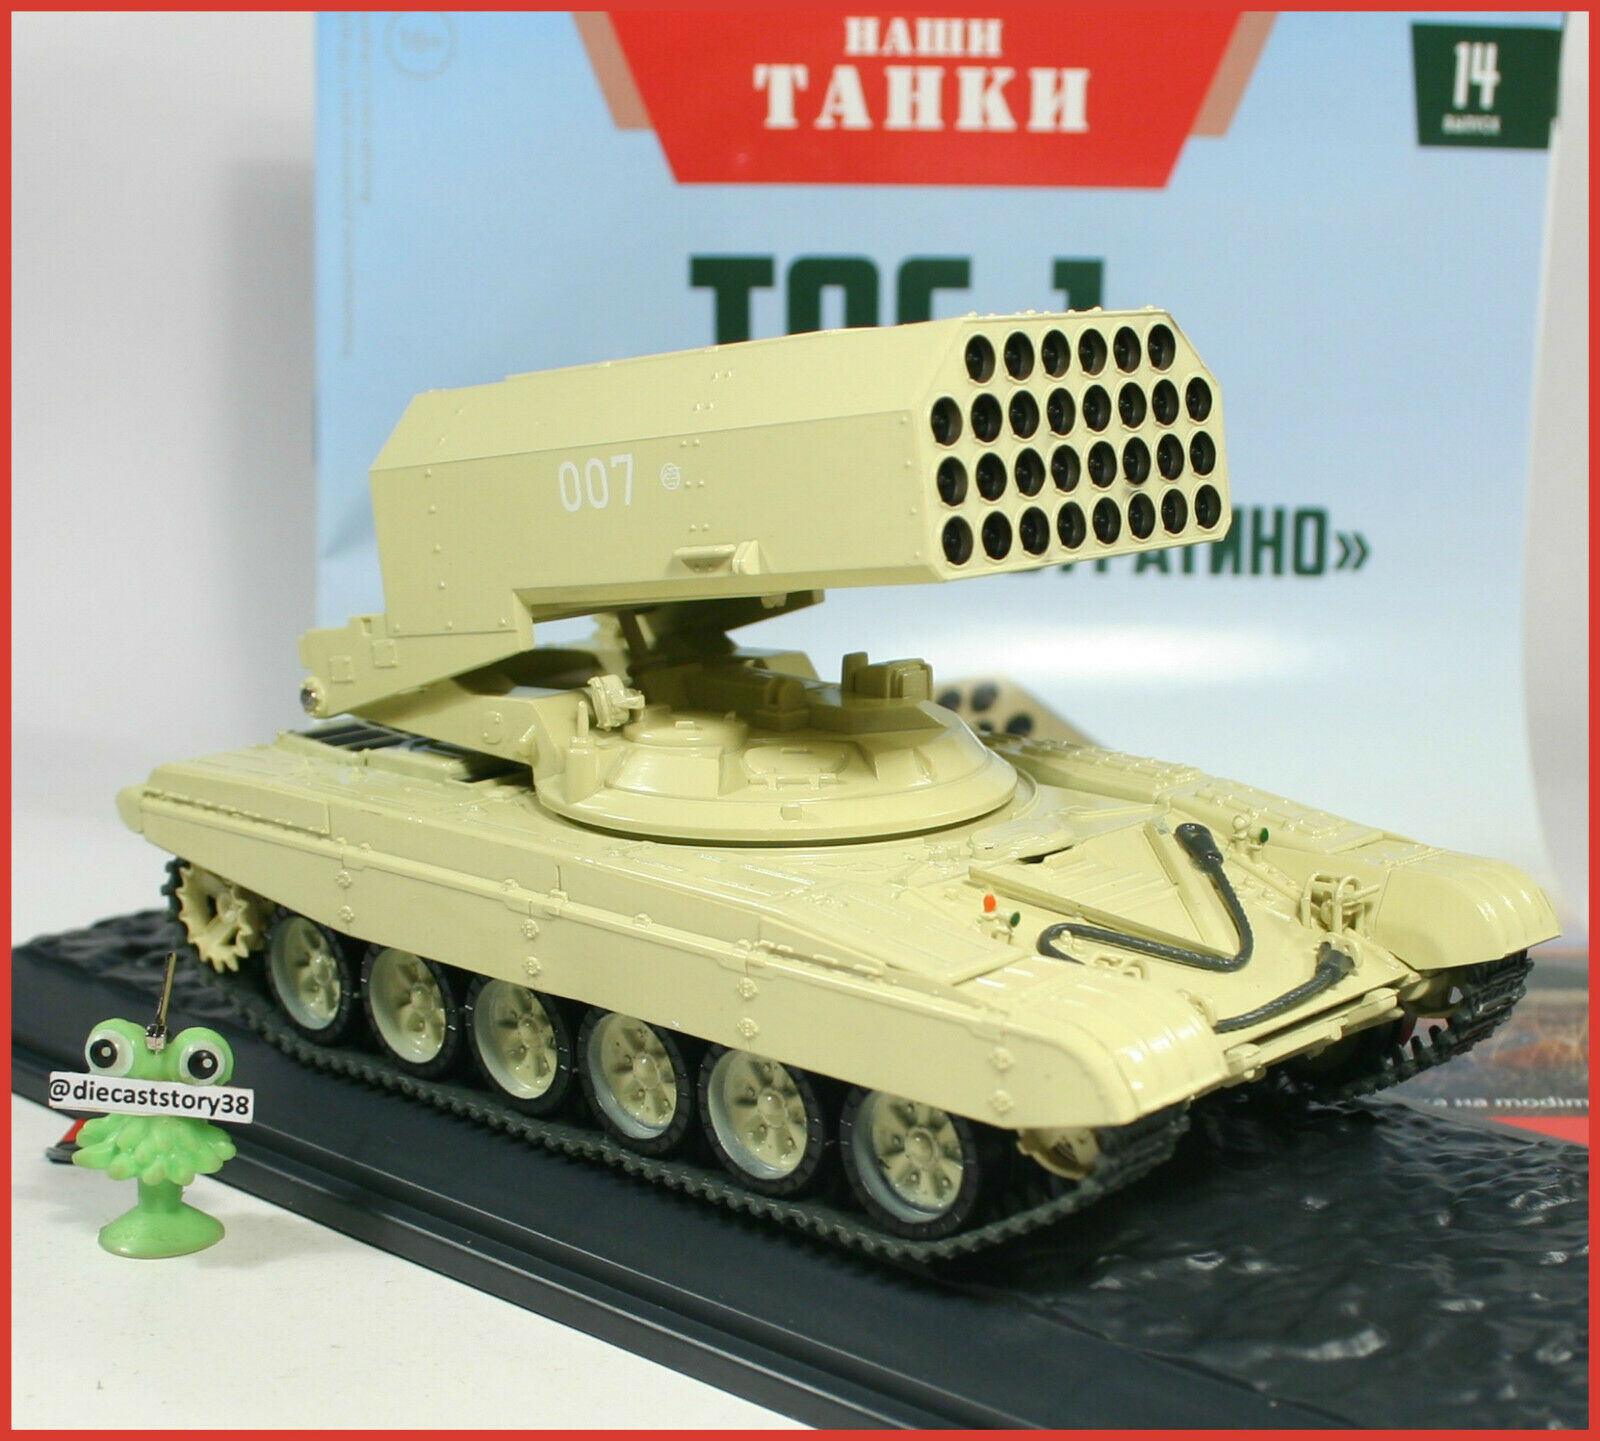 1 43 Tank Flametroder System TOS -1 Buratino T -72 USSR Panzer Russian Modimo {65533;sdrog 6553314;